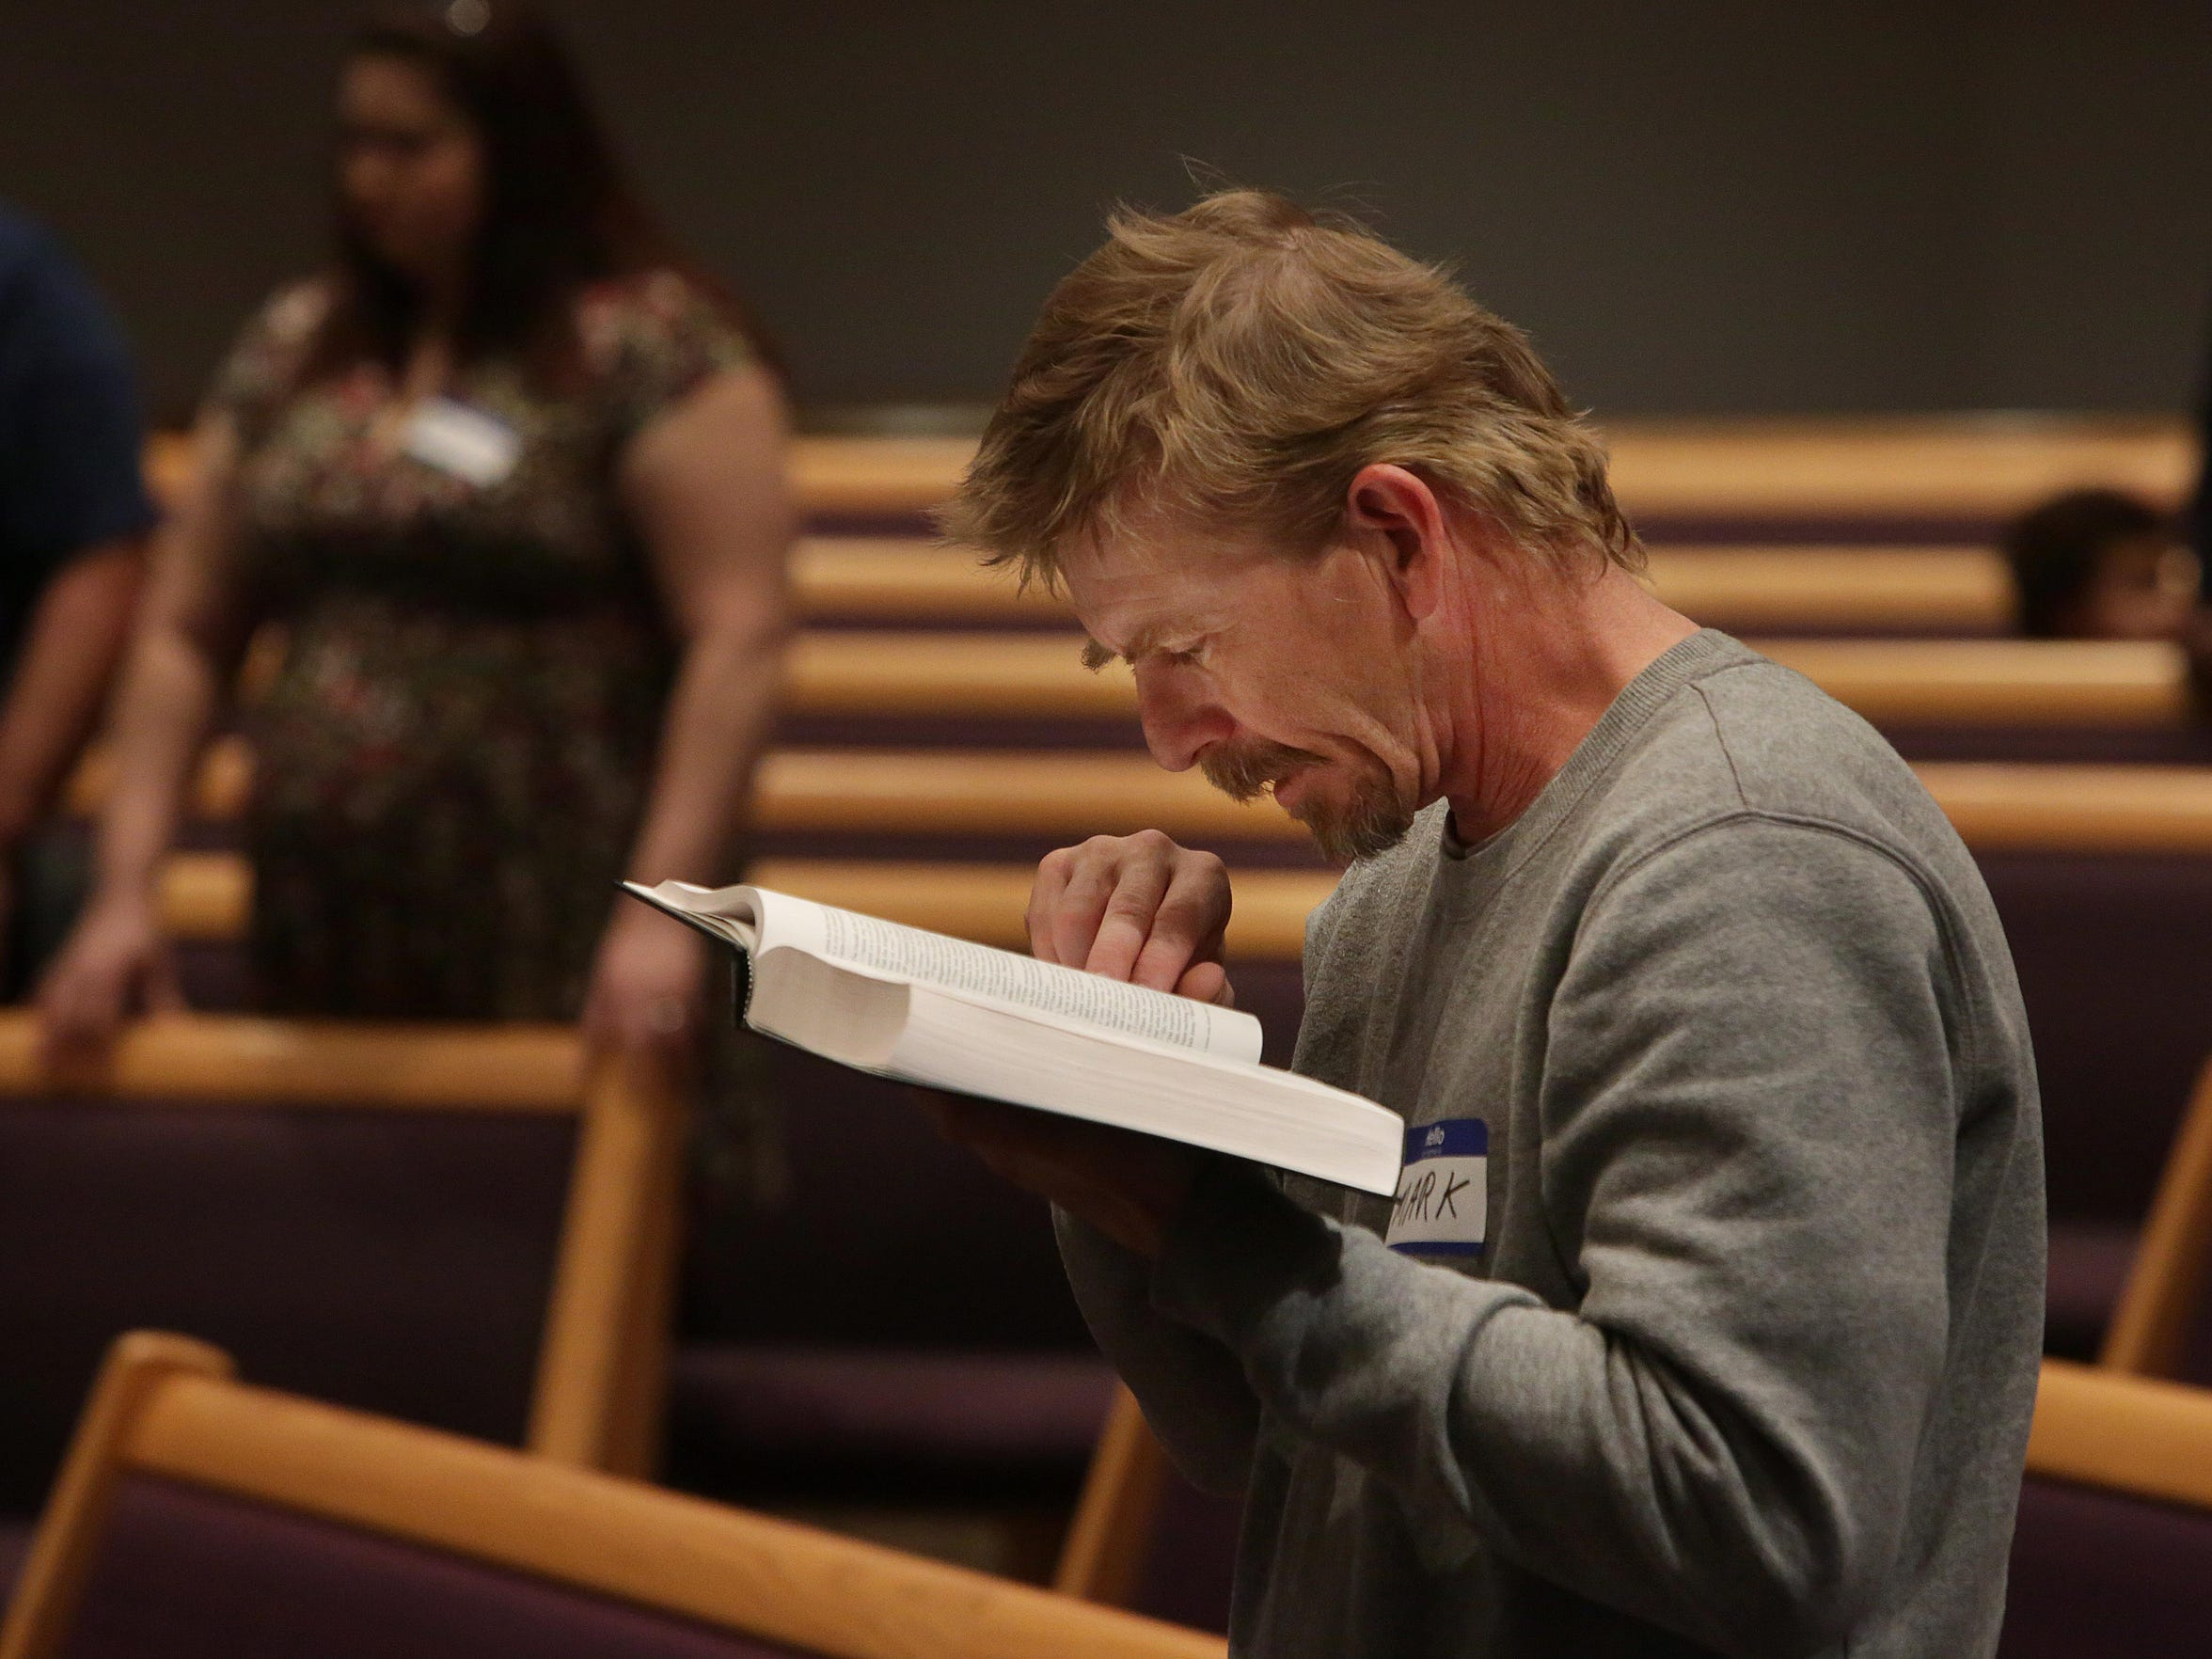 Newly formed CityReach Church is led by Pastor John Alarid and his wife, Hannah. Mark Smith reads the bible during the sermon.